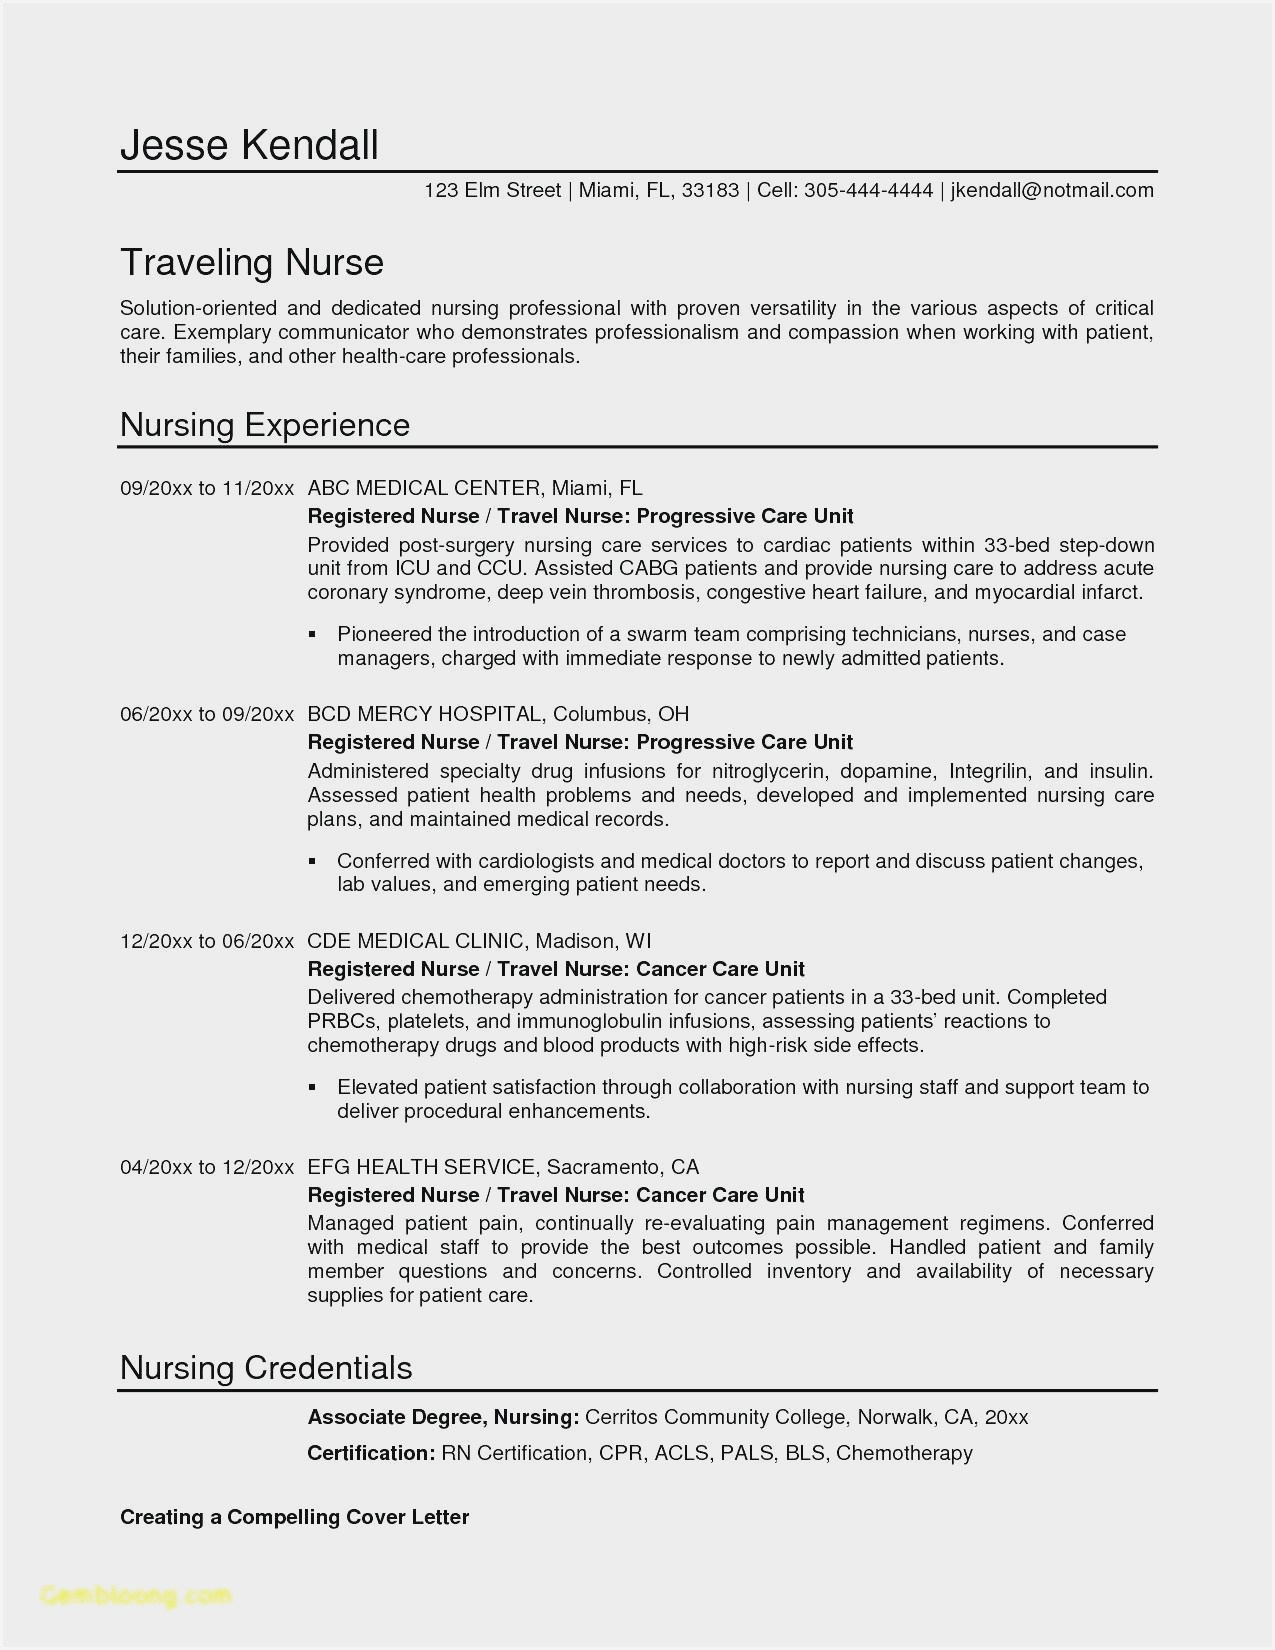 certified professional resume writing cprw certification sample best for data scientist Resume Best Resume Writing Certification